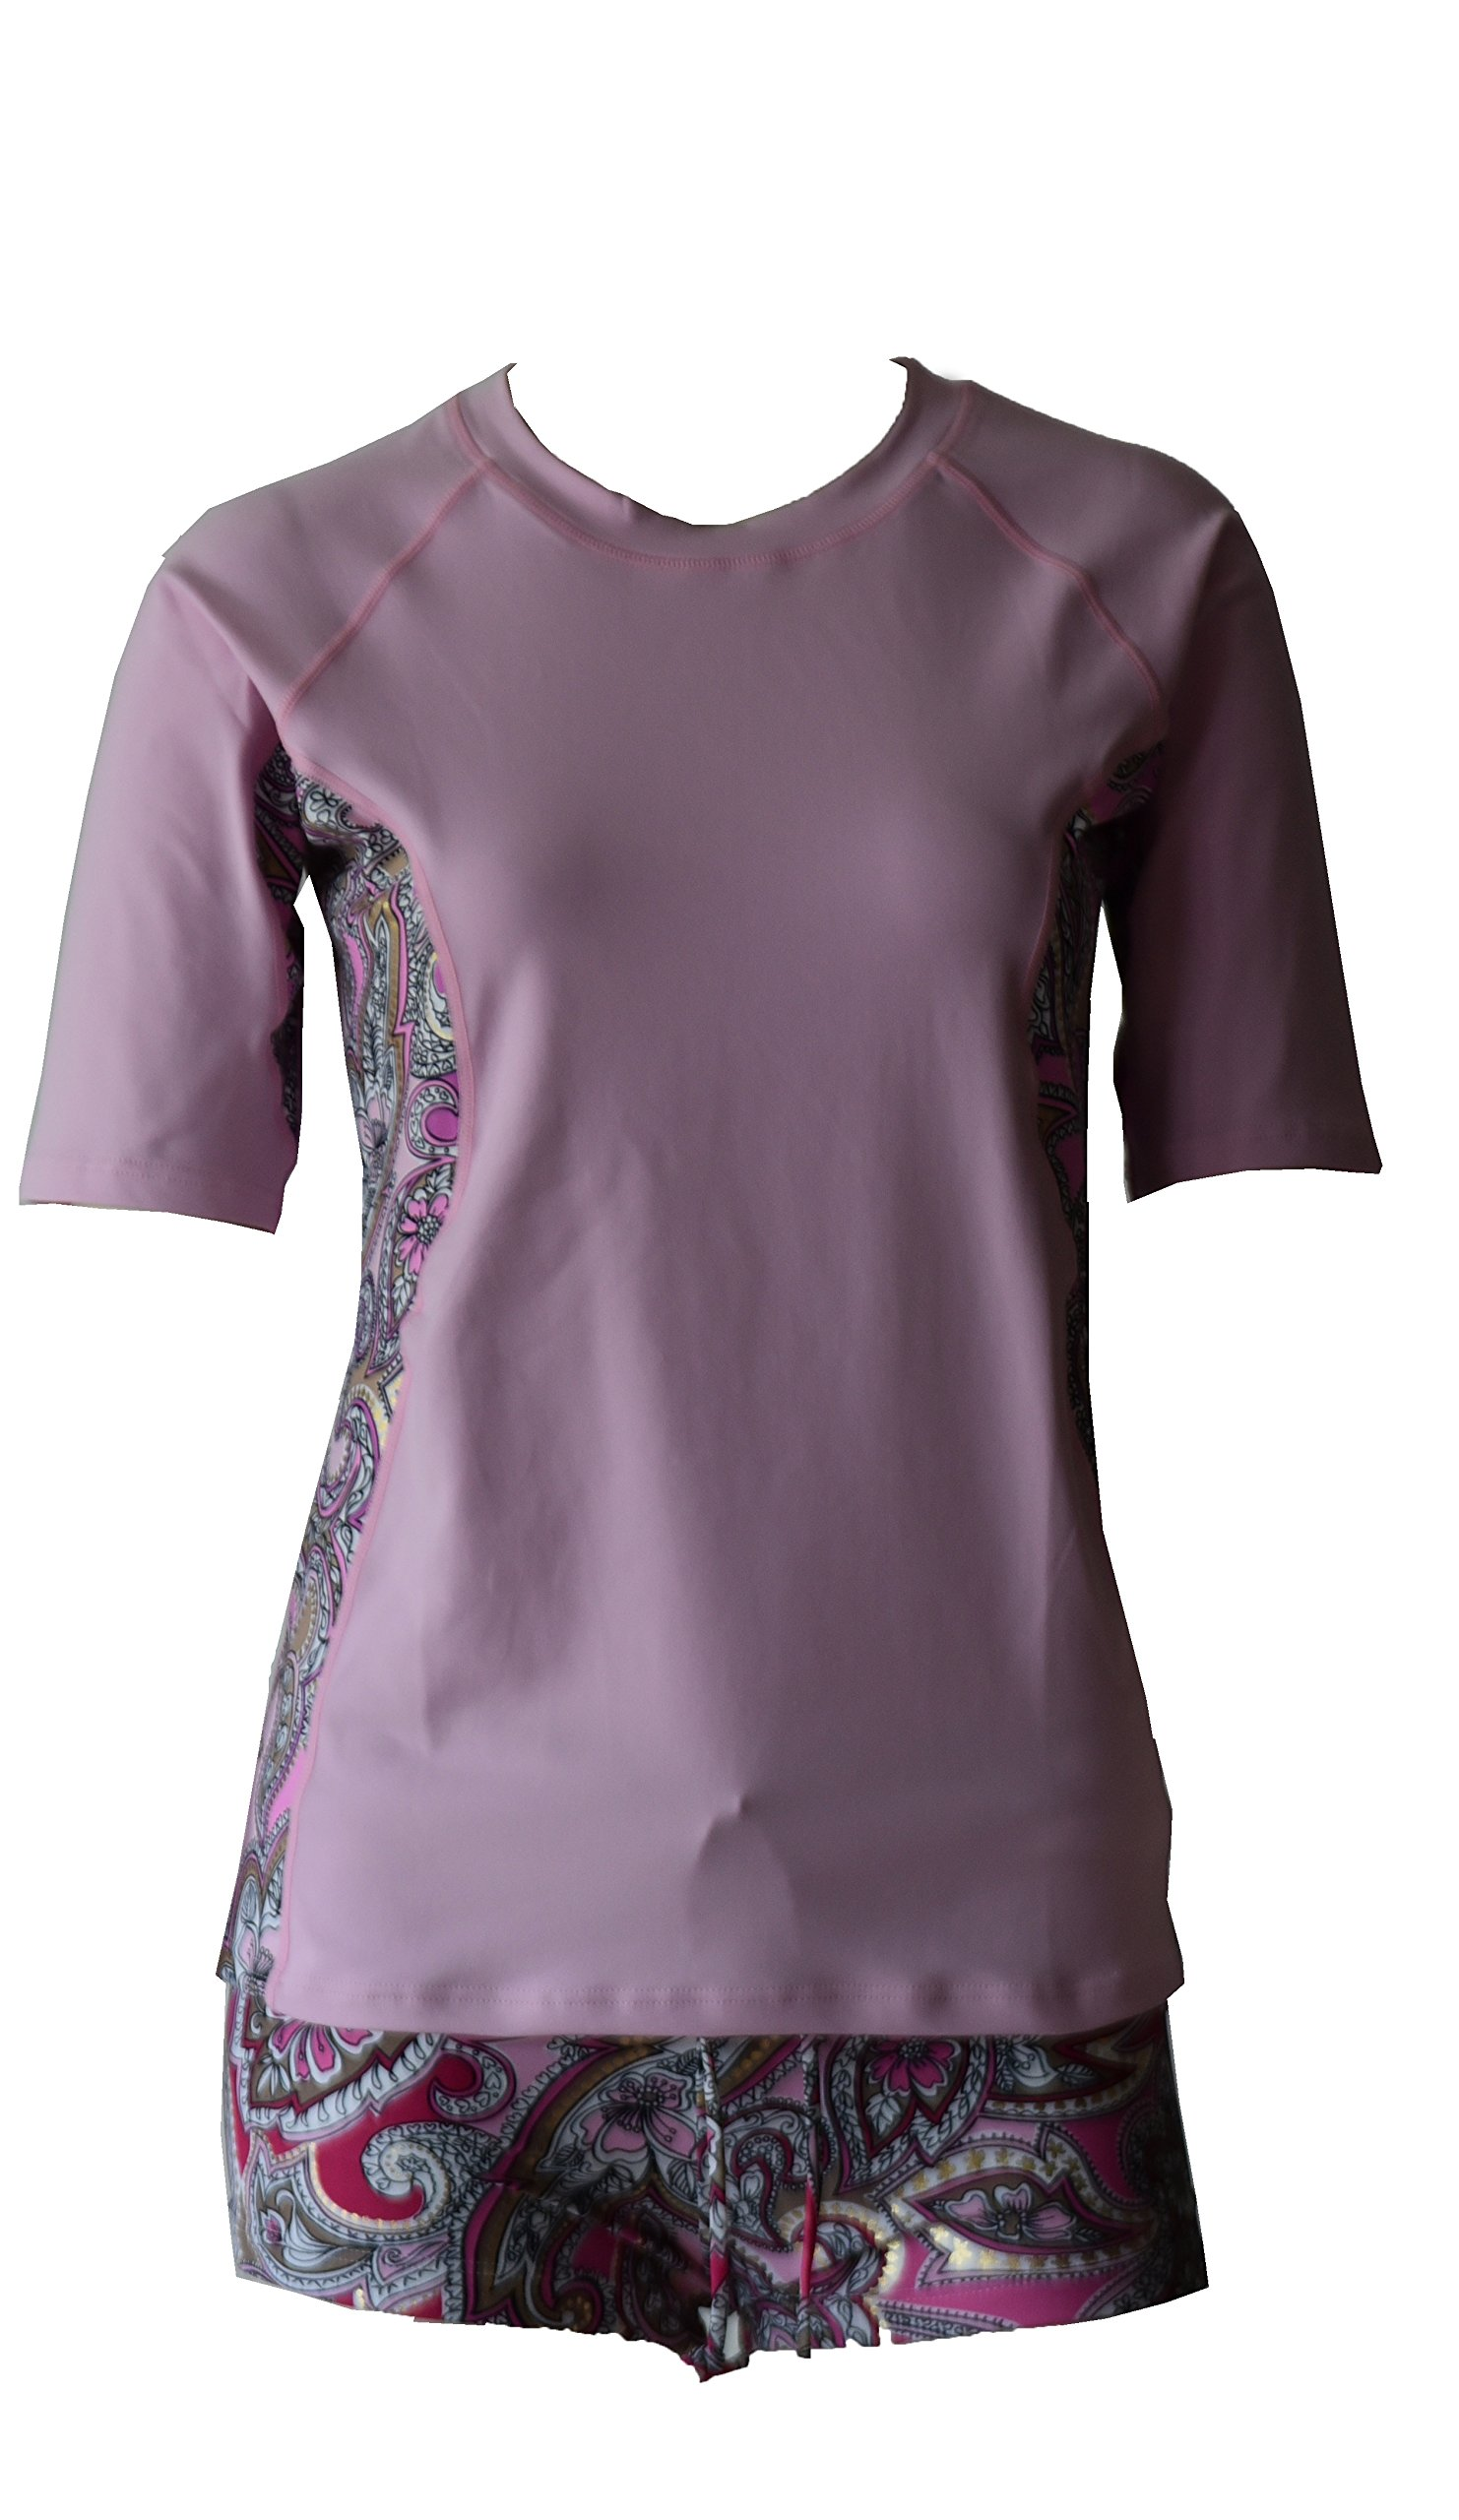 Private Island Hawaii Women UV Wetsuits Short Sleeve Rash Guard Top Pink With Pink Gold Spot XX-Large